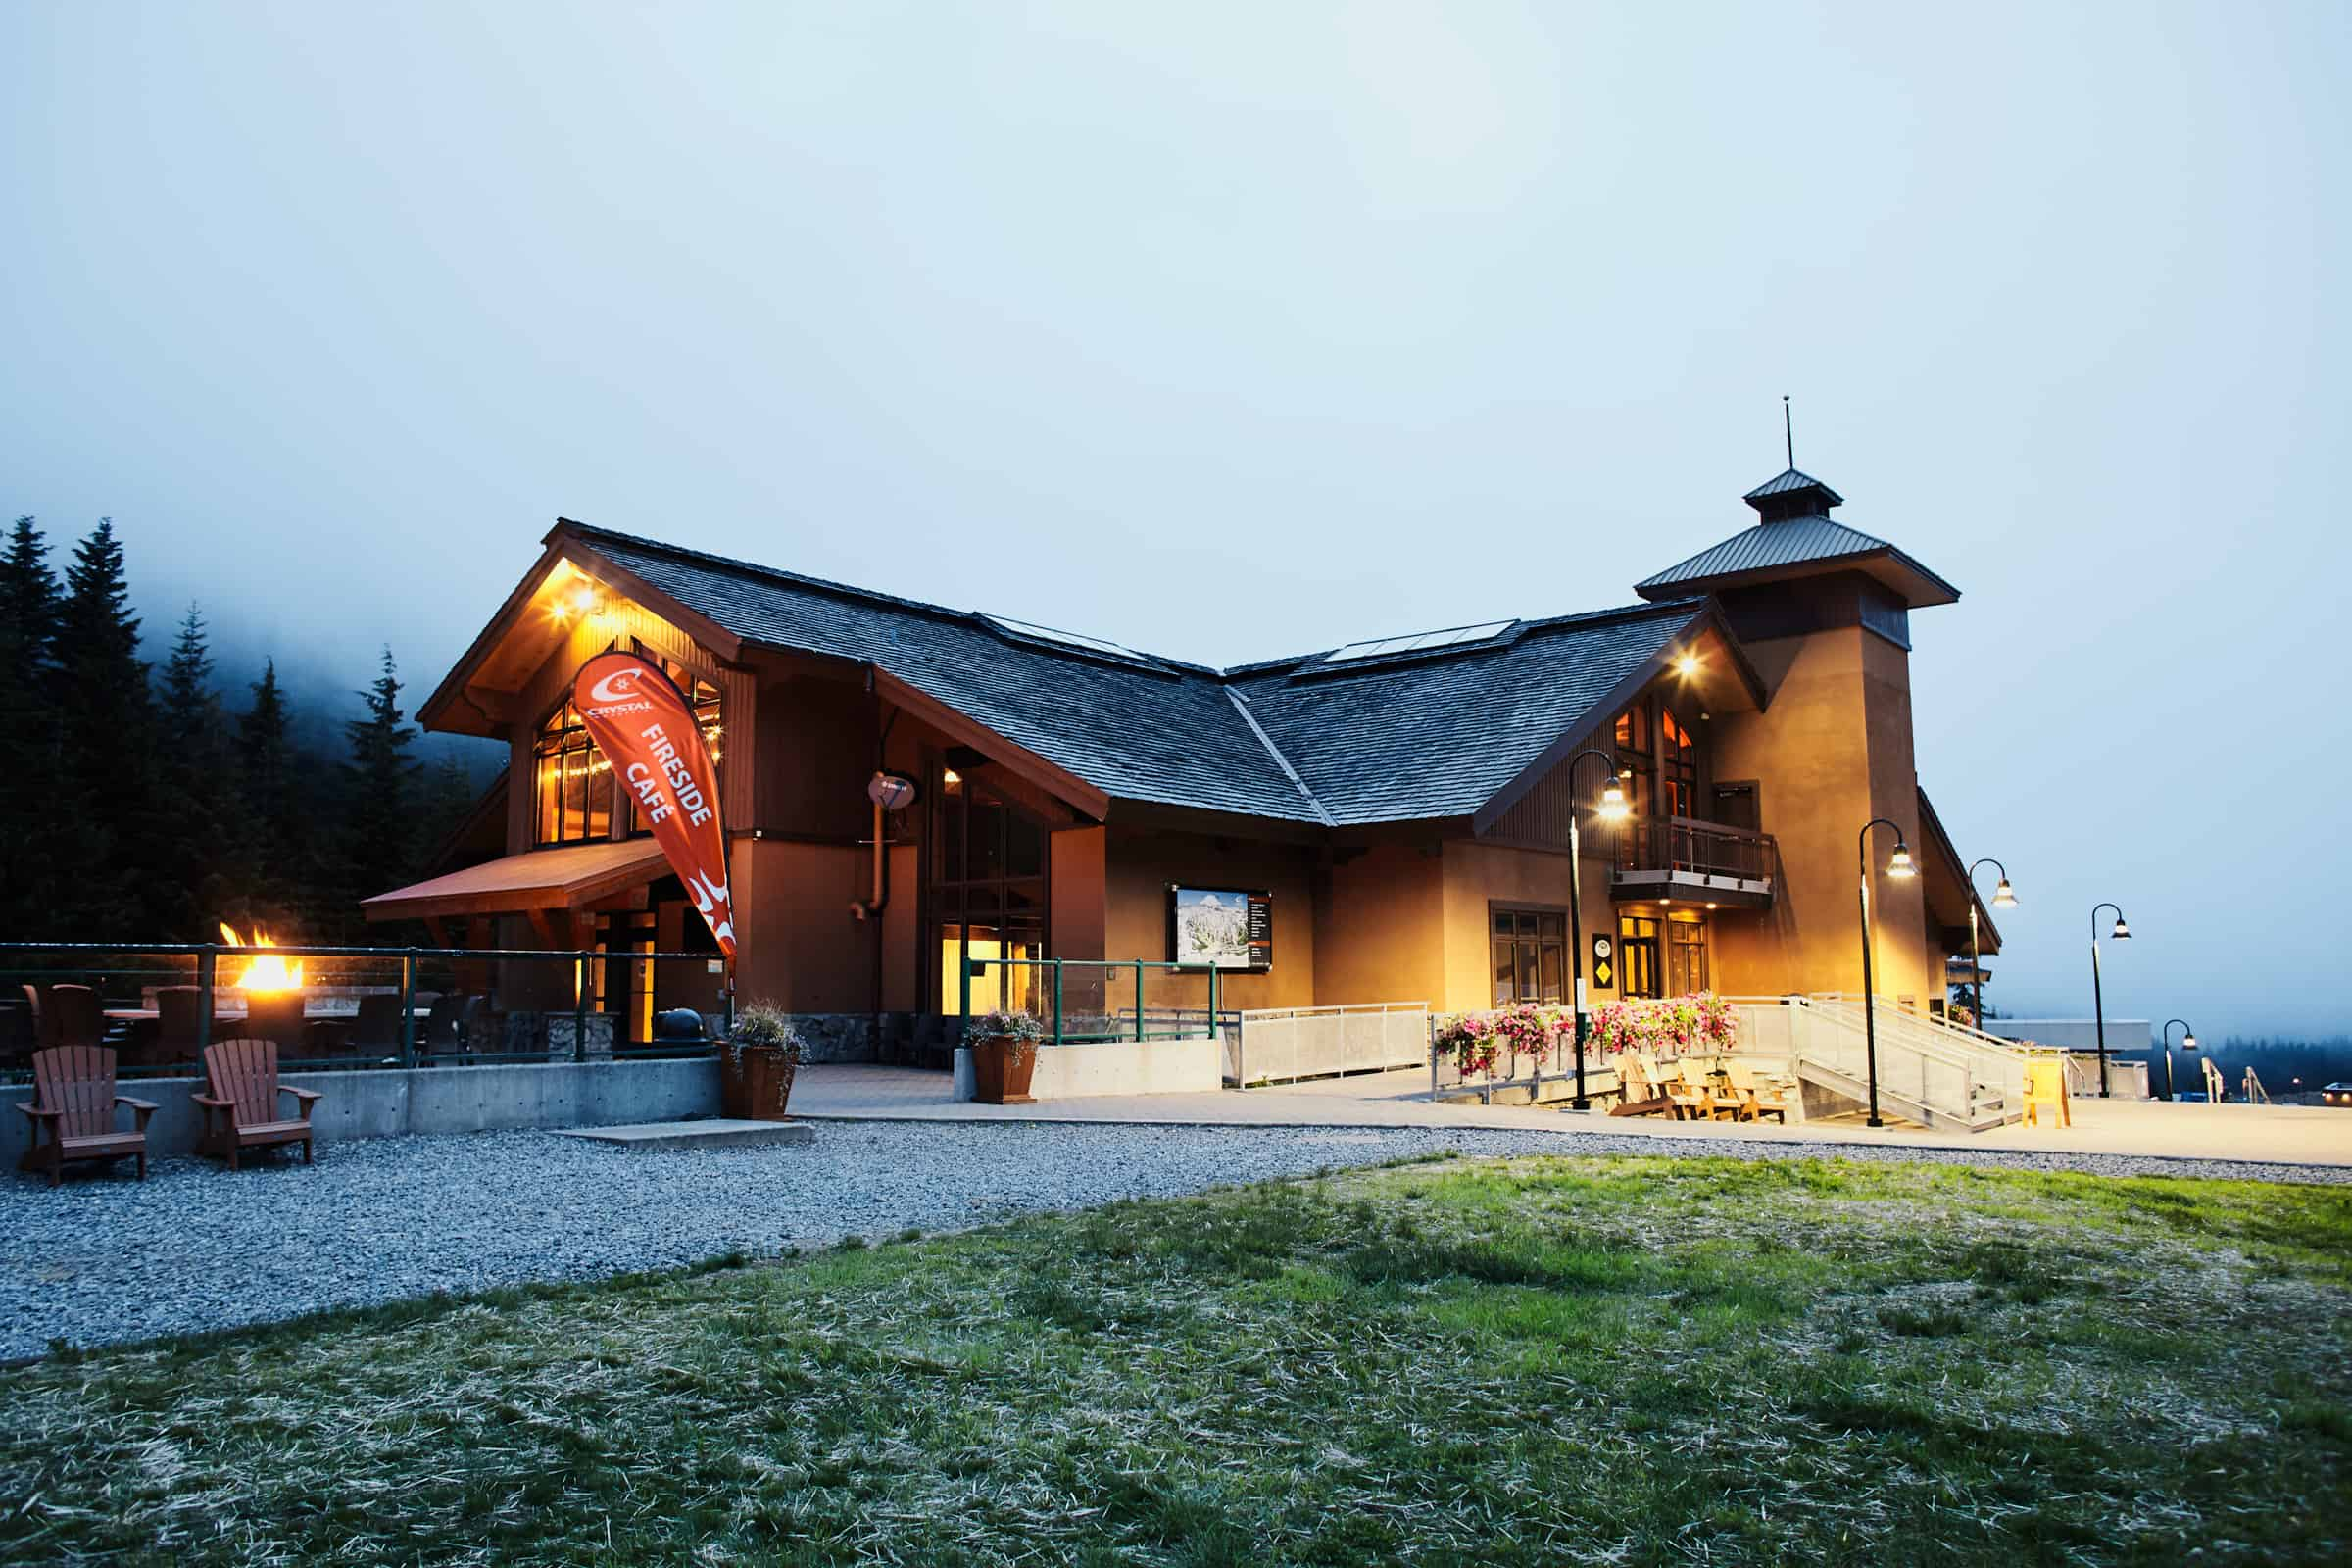 Crystal Mountain lodge